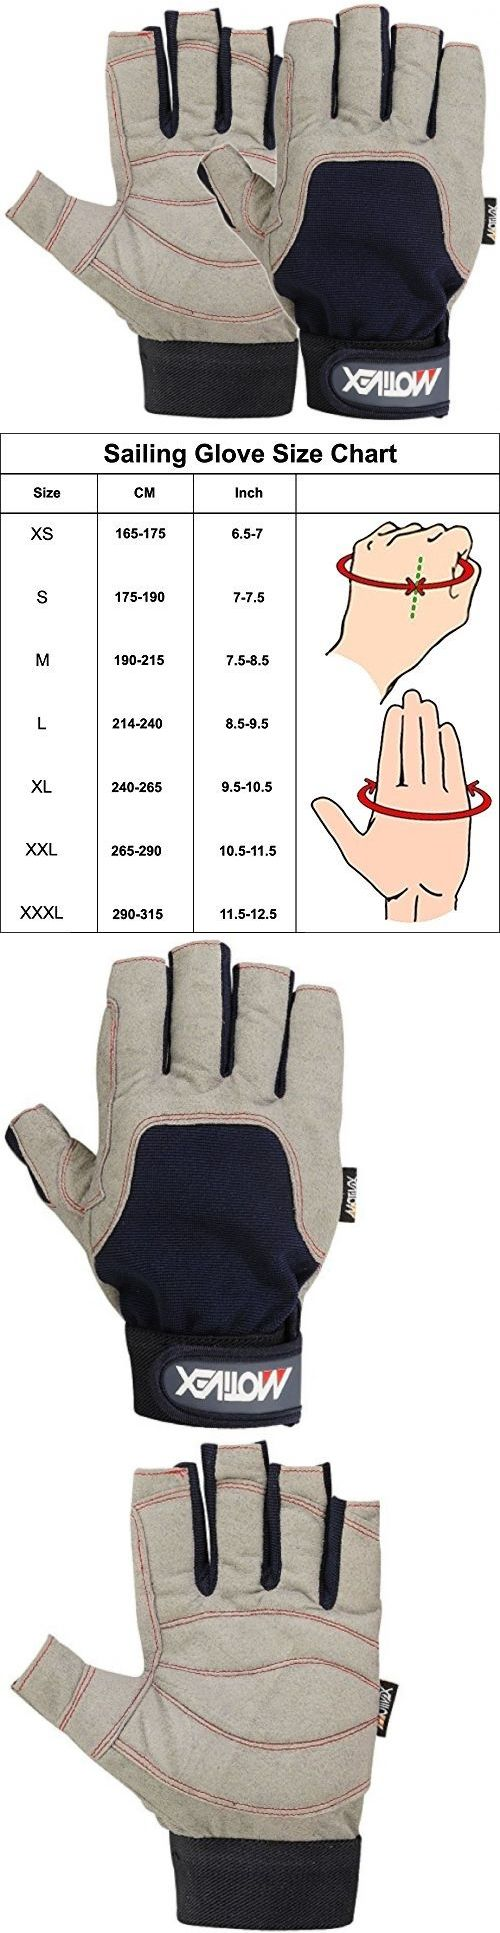 Driving gloves yahoo answers - Other Fins Footwear And Gloves 159147 Sailing Gloves Deckhand Gloves Blue Grey Medium